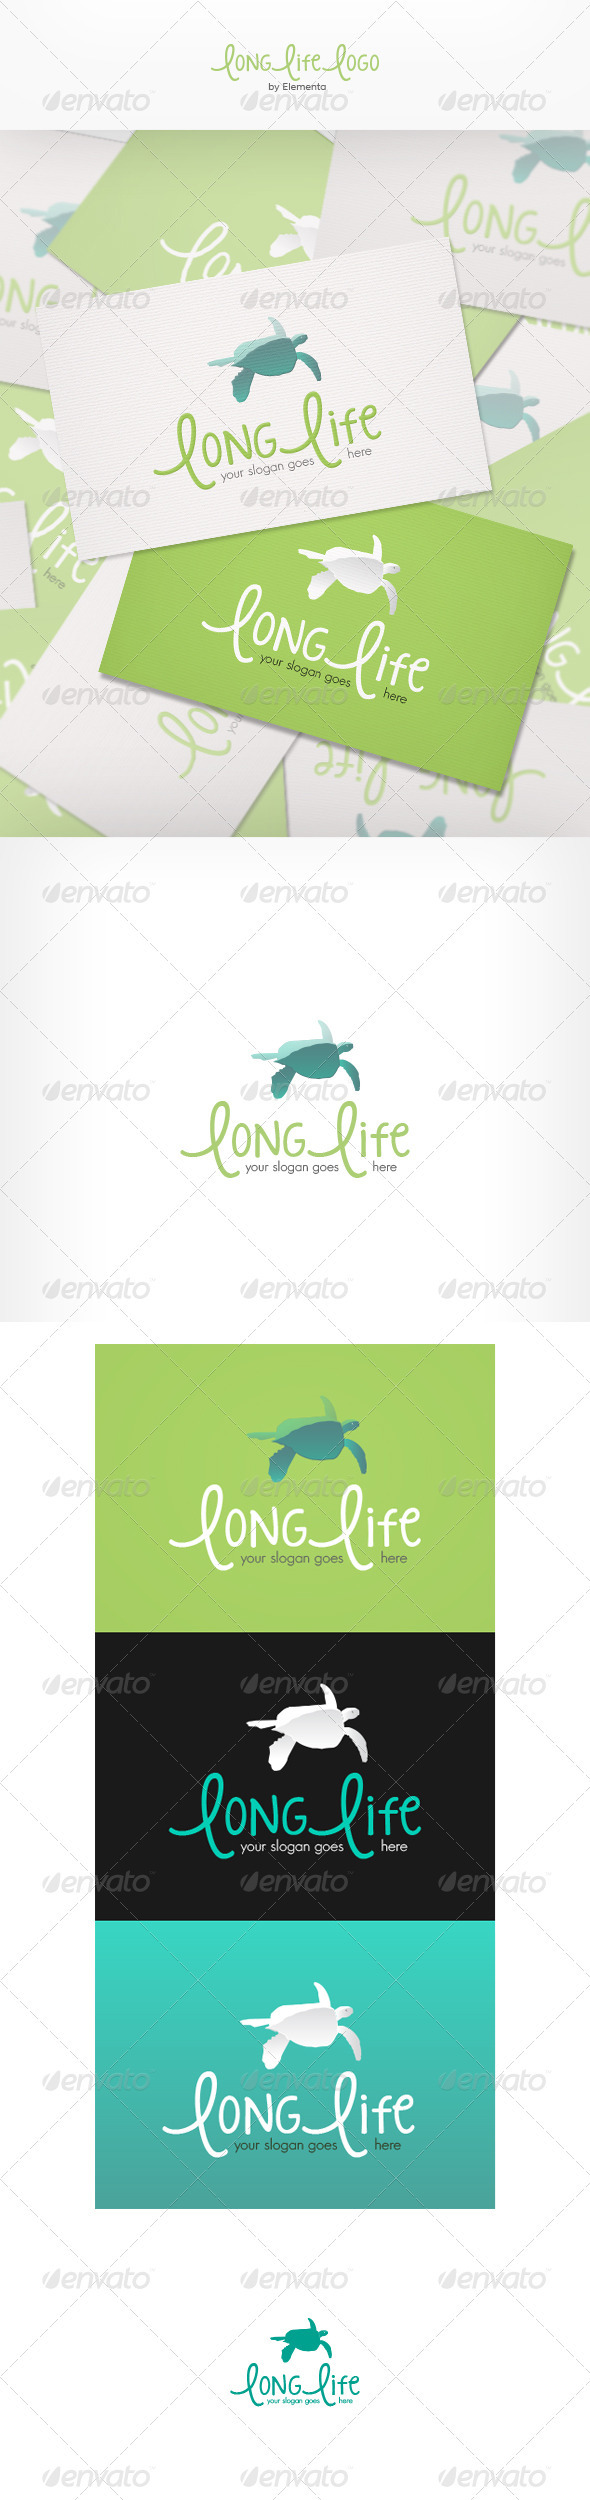 Long Life Logo - Nature Logo Templates